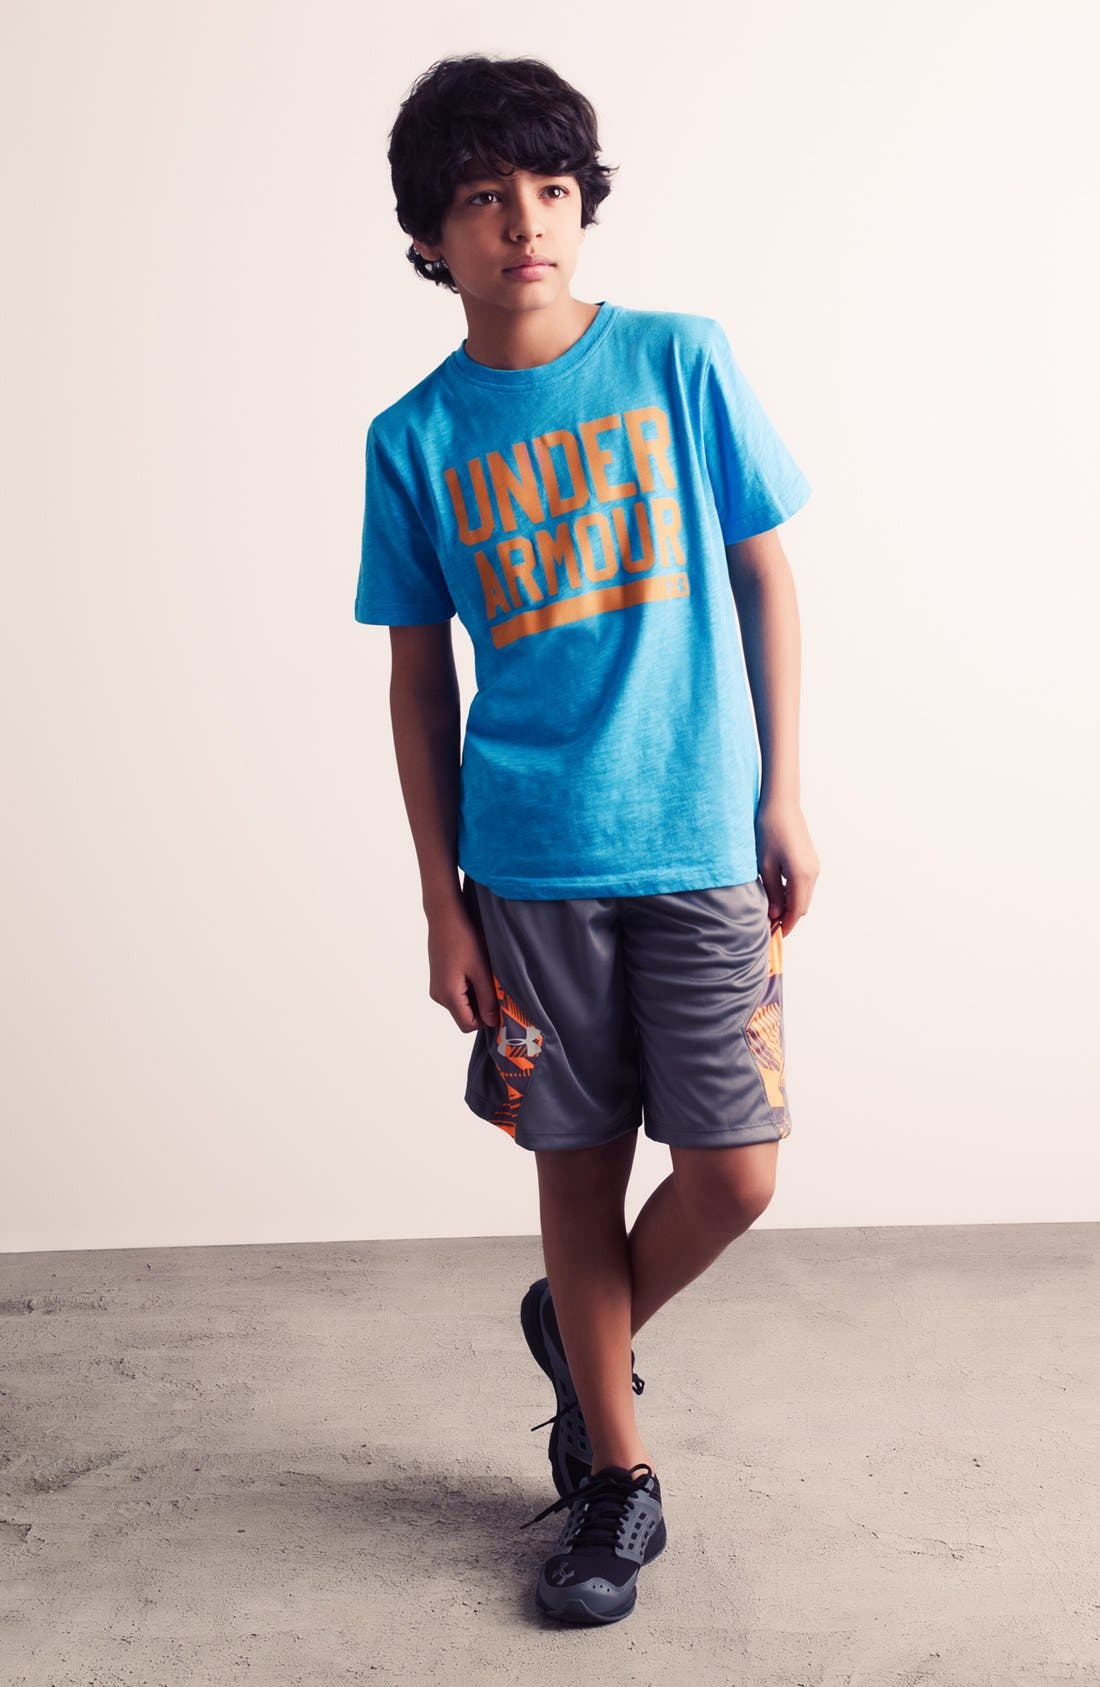 Main Image - Under Armour T-Shirt, Shorts & Sneaker (Big Boys)